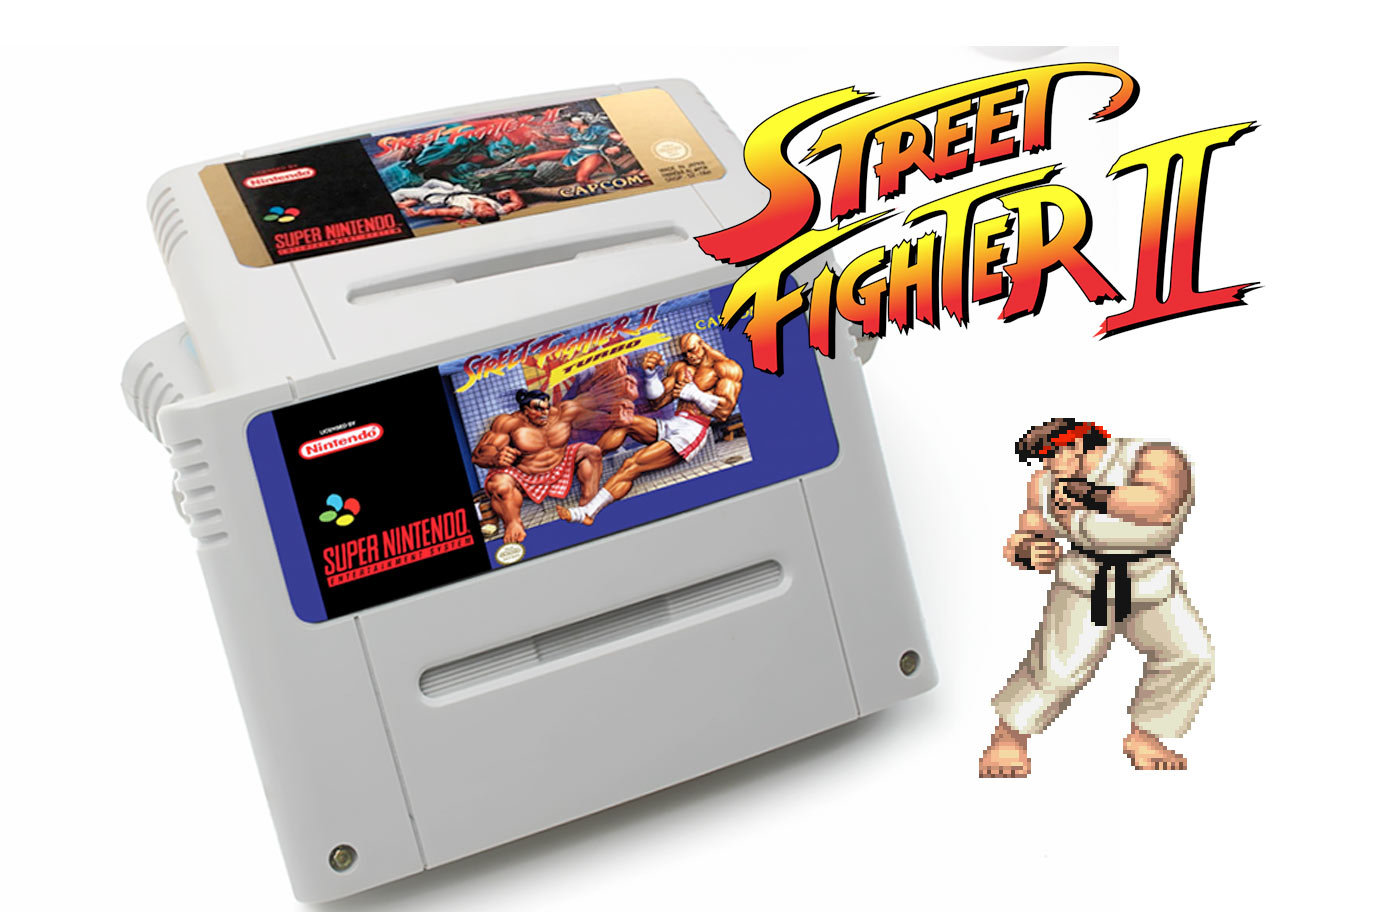 Versions-Street-Fighter-2-Super-Nintendo-Club-Retrogaming